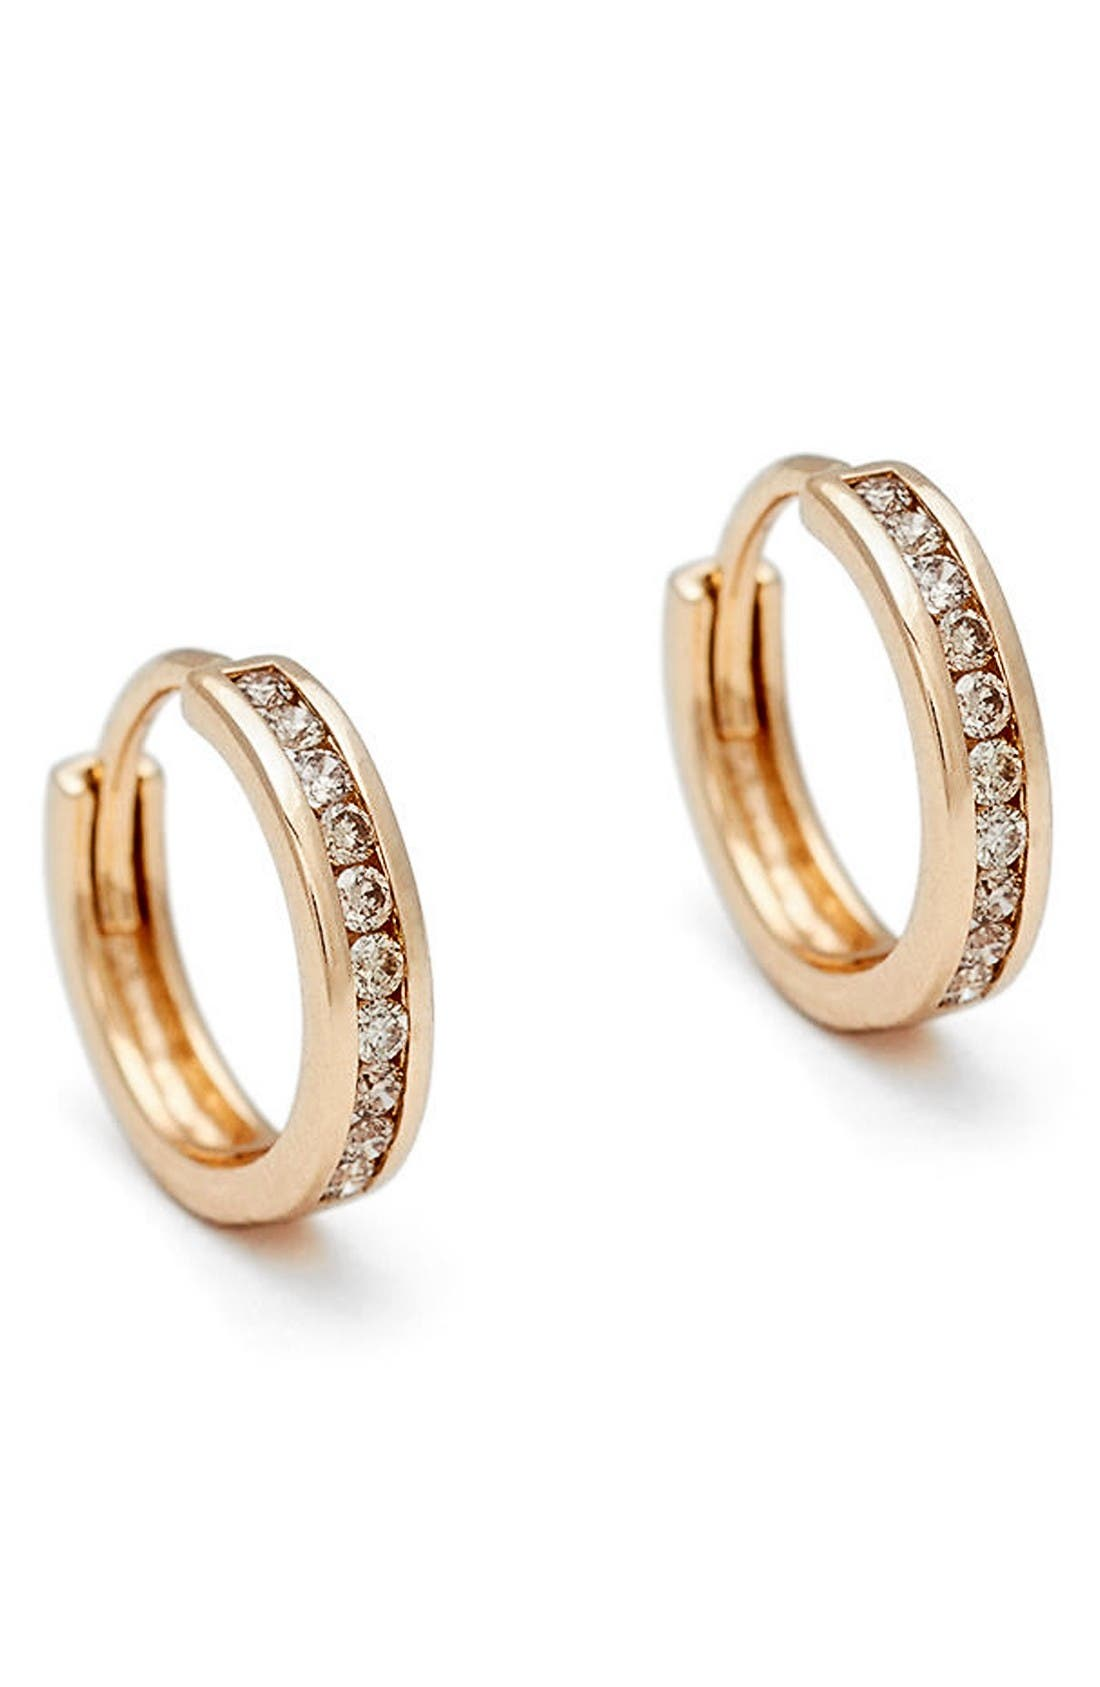 ANNA SHEFFIELD Licol Champagne Diamond Hoop Earrings